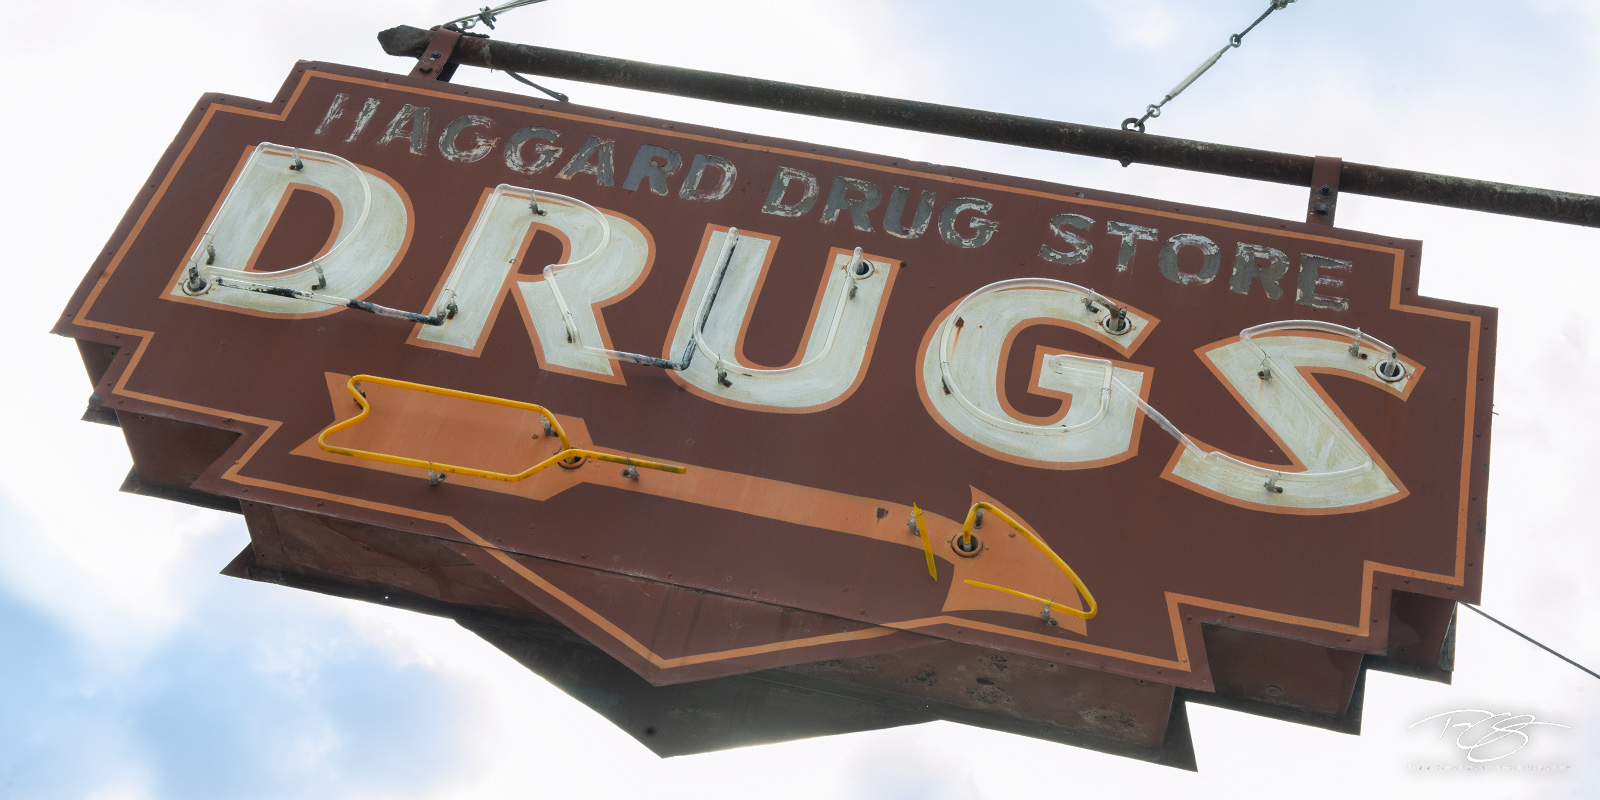 haggard drug store, haggard drugs, drugs, neon sign, neon, sign, rusty, vintage sign, arrow, mississippi, clarksdale, panorama, rust, peeling paint, orange, photo